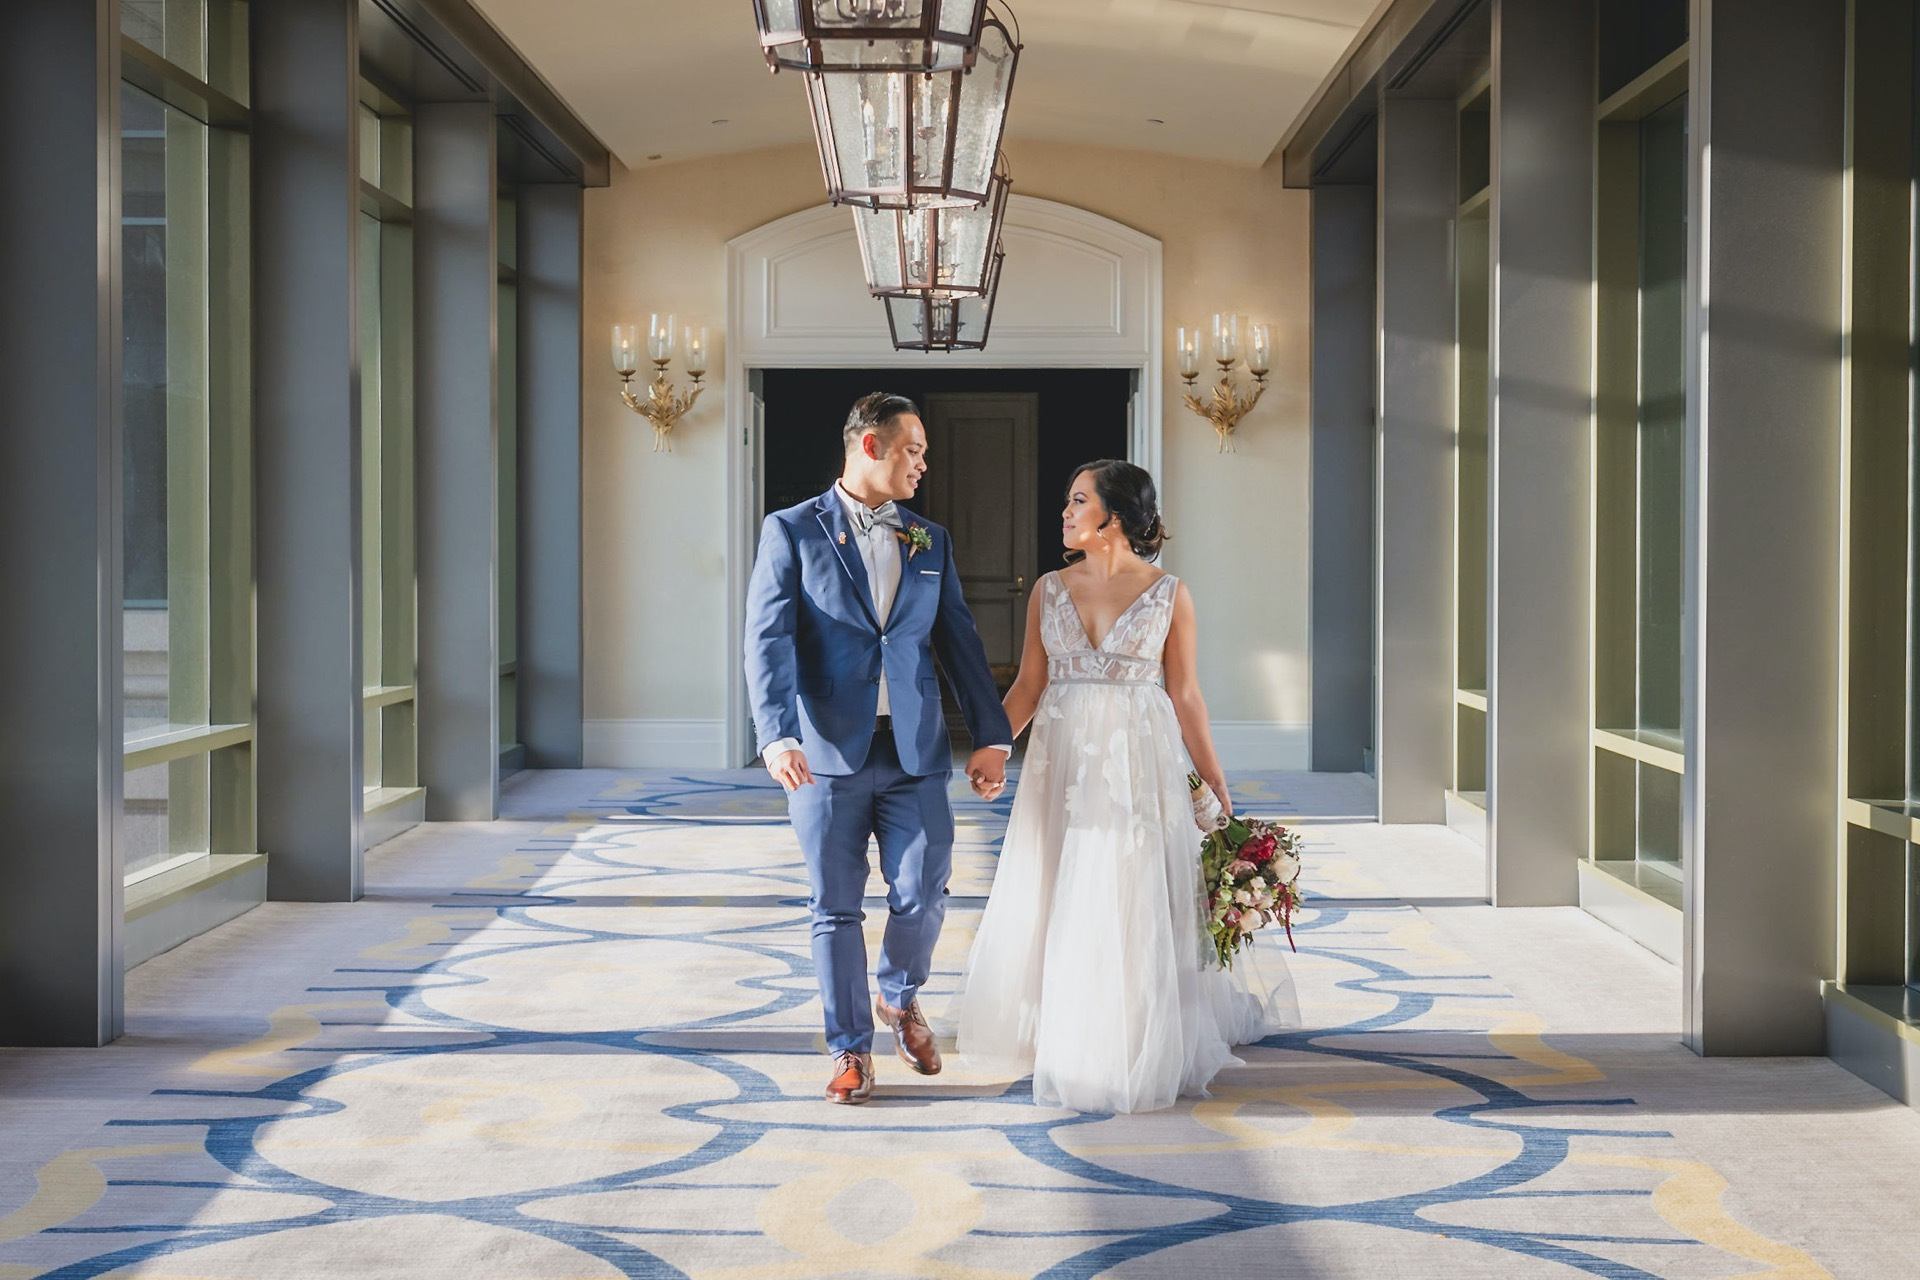 Angela Garcia's Tips For New Wedding Planners